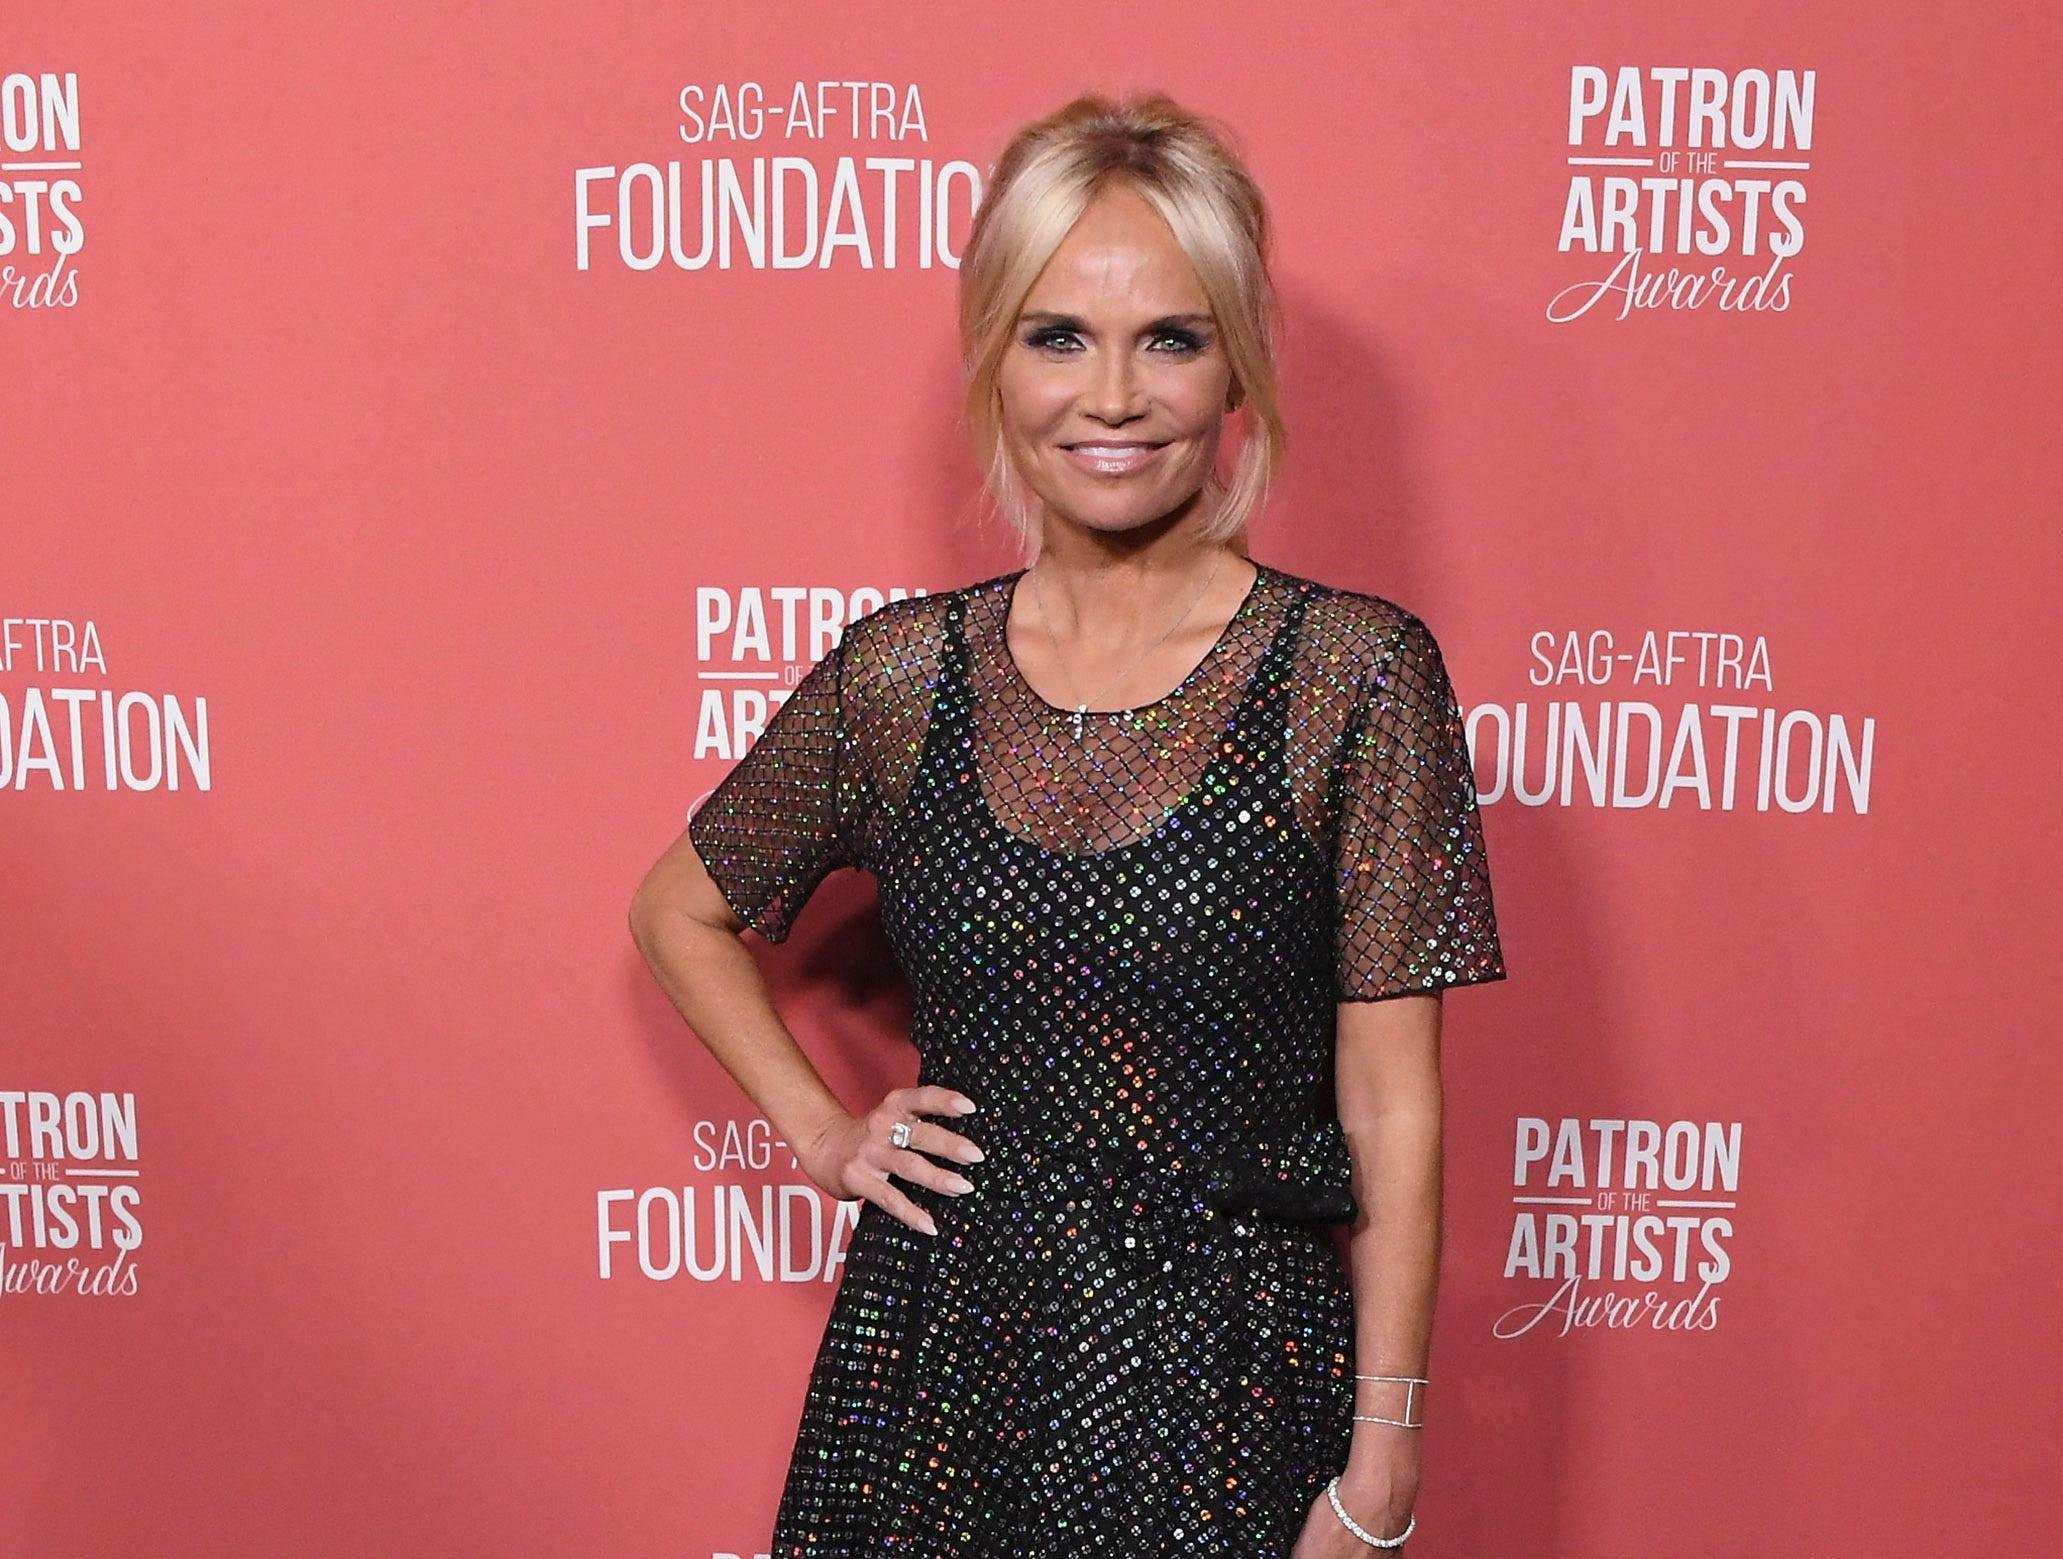 BEVERLY HILLS, CA - NOVEMBER 08:  Kristin Chenoweth attends SAG-AFTRA Foundation's 3rd Annual Patron Of The Artists Awards at Wallis Annenberg Center for the Performing Arts on November 8, 2018 in Beverly Hills, California.  (Photo by Jon Kopaloff/FilmMagic) ORG XMIT: 775233471 ORIG FILE ID: 1059469396